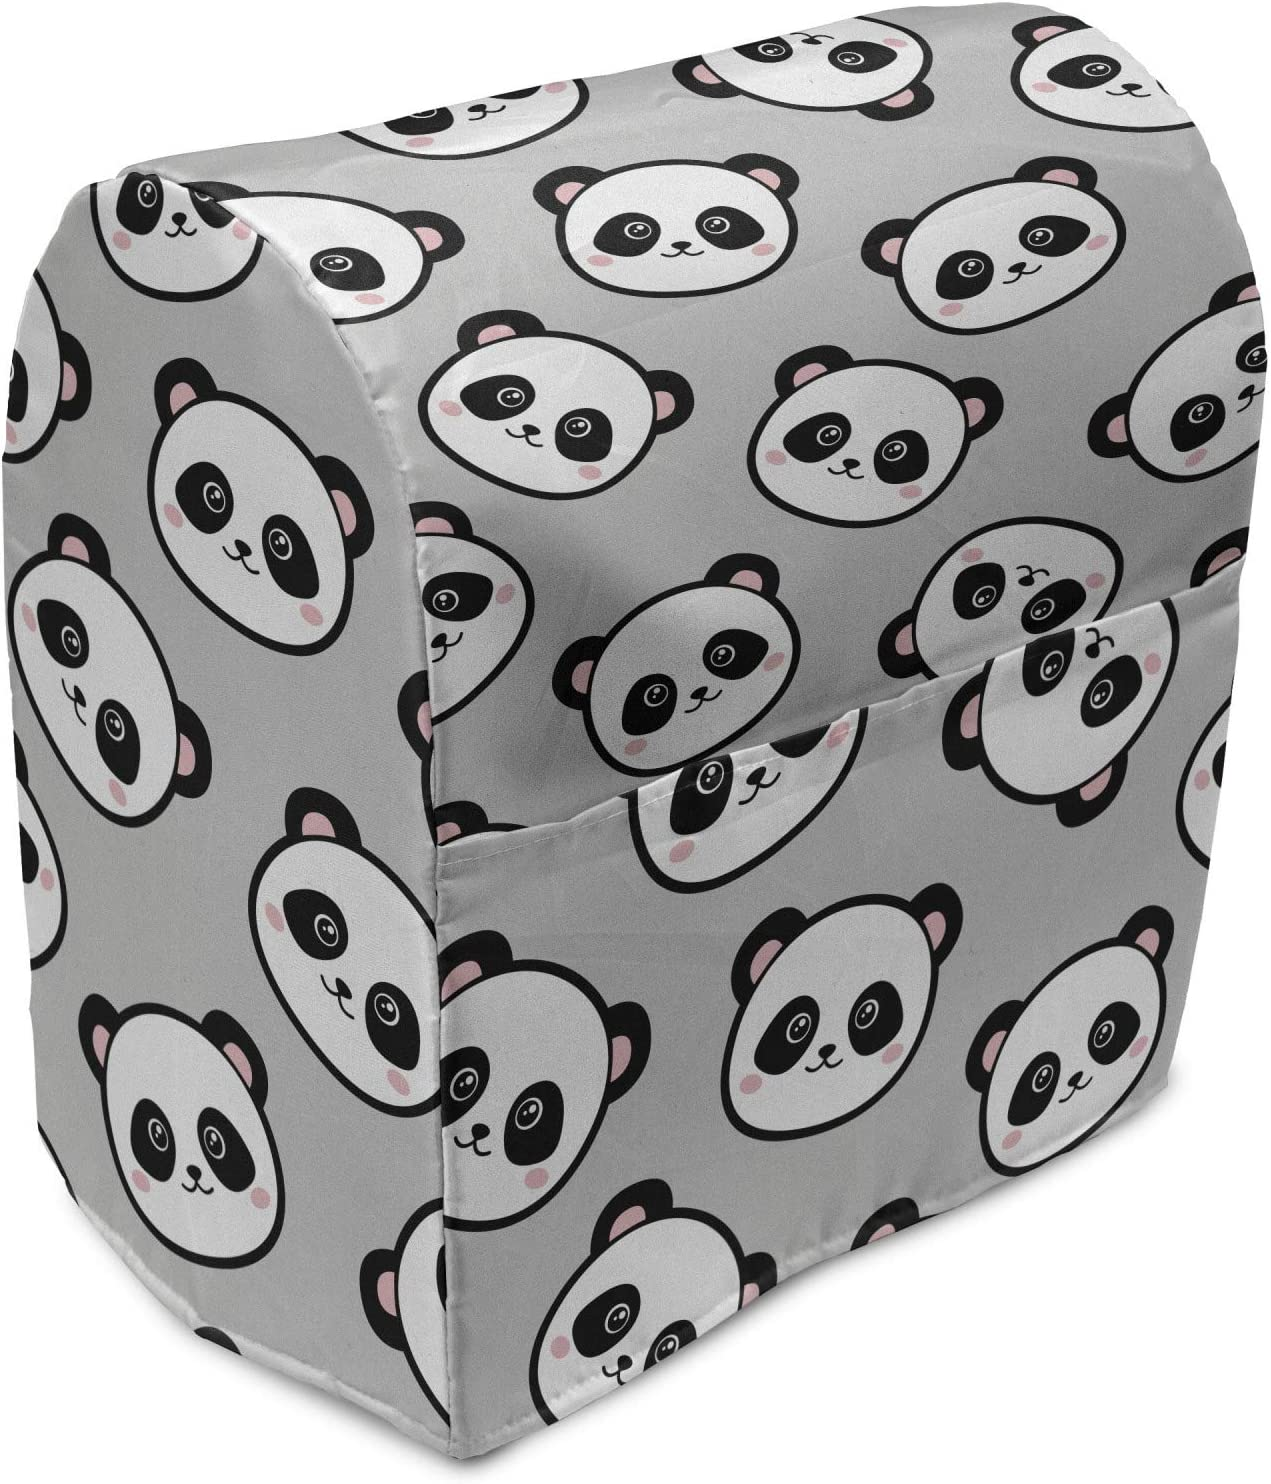 Lunarable Panda Stand Mixer Cover Heads Max 41% OFF Direct stock discount Bear Little Chinese Rep